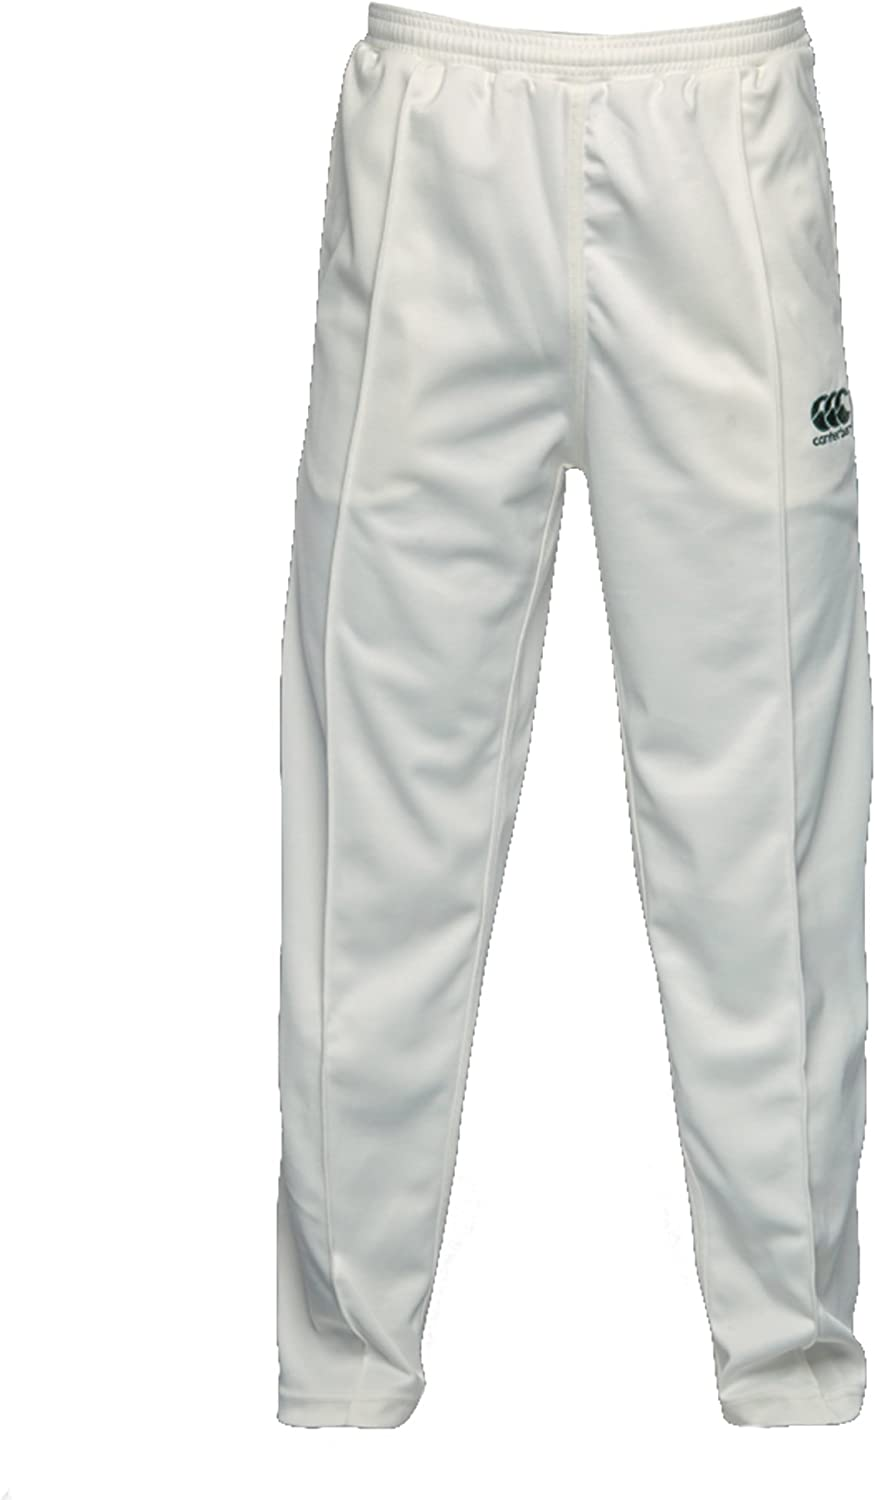 Canterbury Challenge Financial sales sale the lowest price of Japan ☆ Mens Cricket Pants